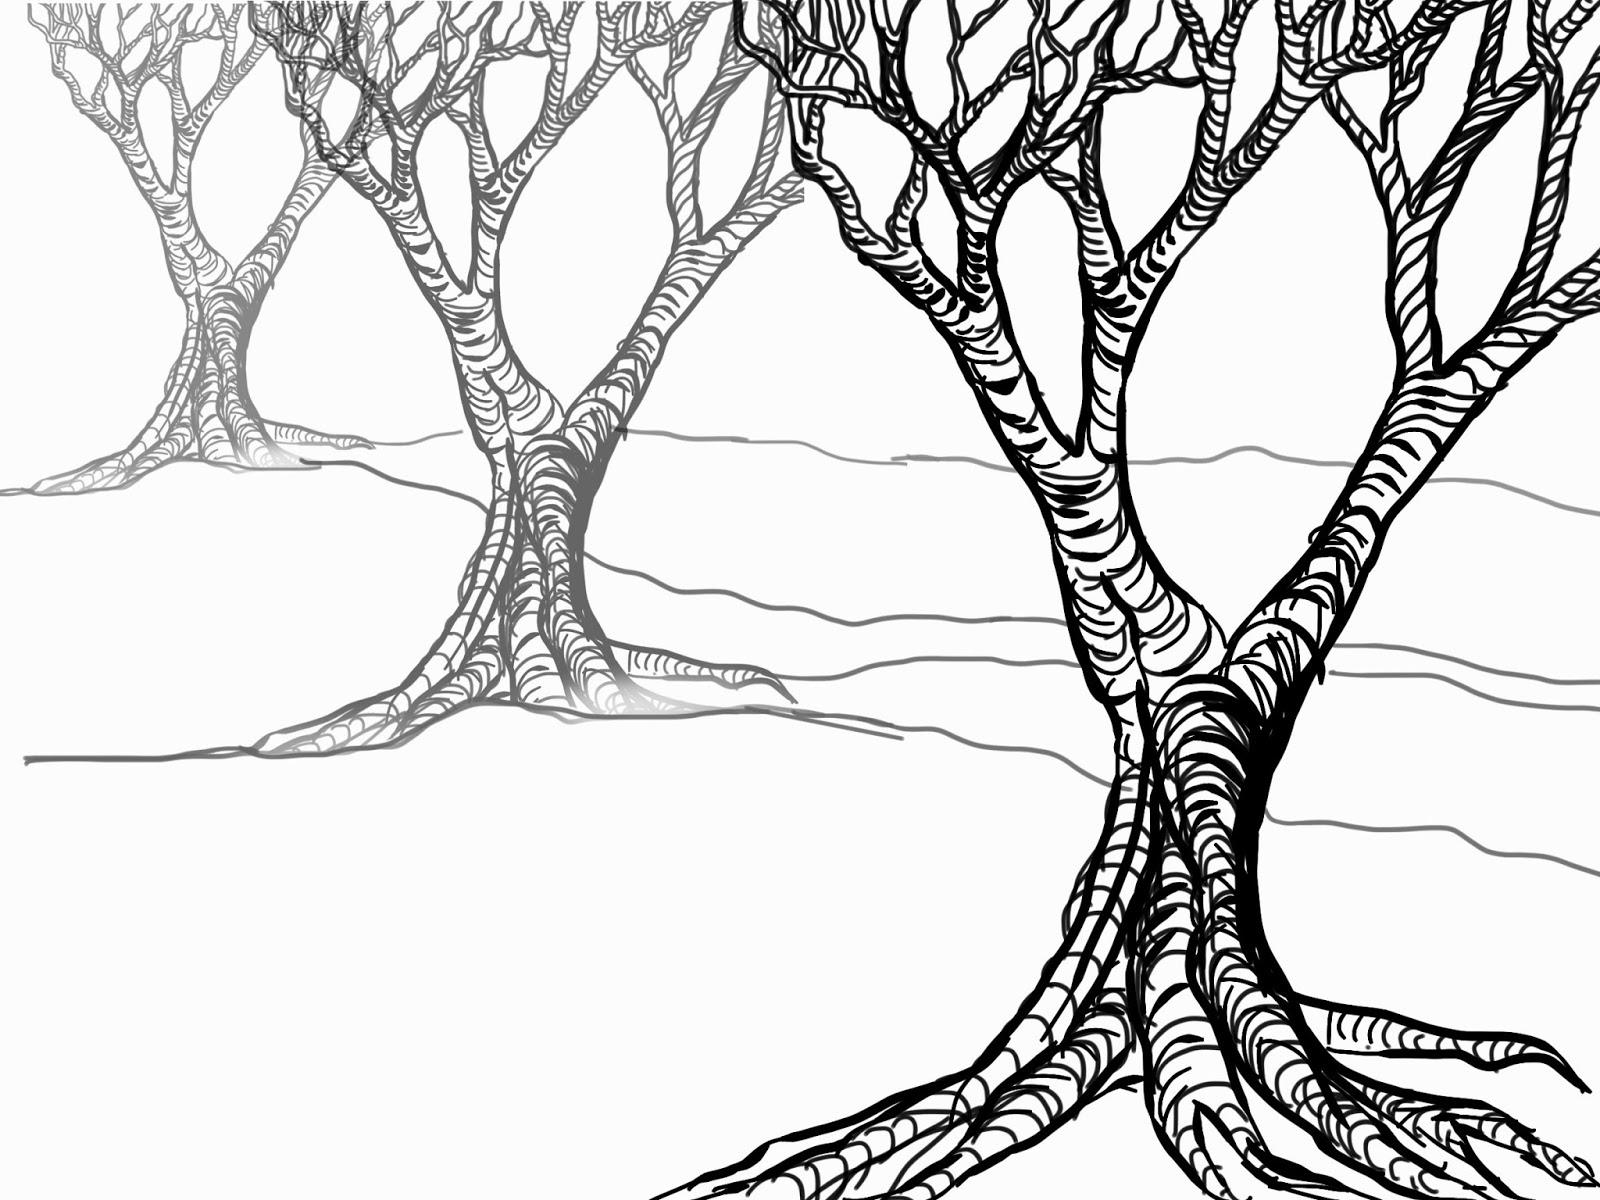 1600x1200 Pencil Drawing Of Tree Background Dry Treeout Leaves